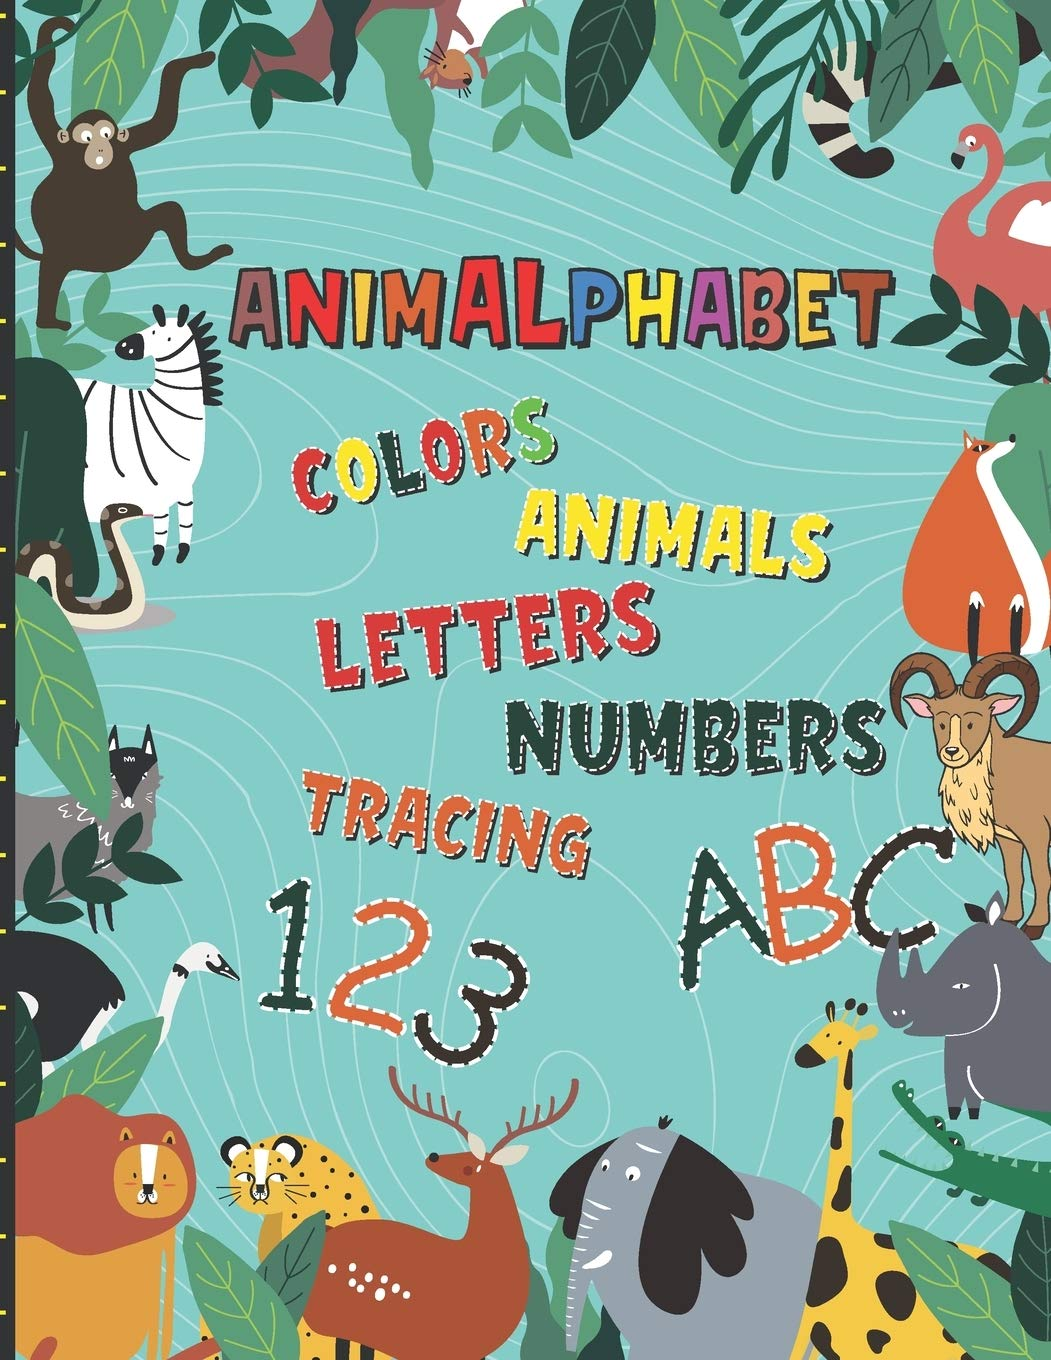 Animalphabet Practice Coloring And Tracing Activities For Kids Animal Names Letters And Numbers English Version Majjali Yassine 9798644481729 Amazon Com Books